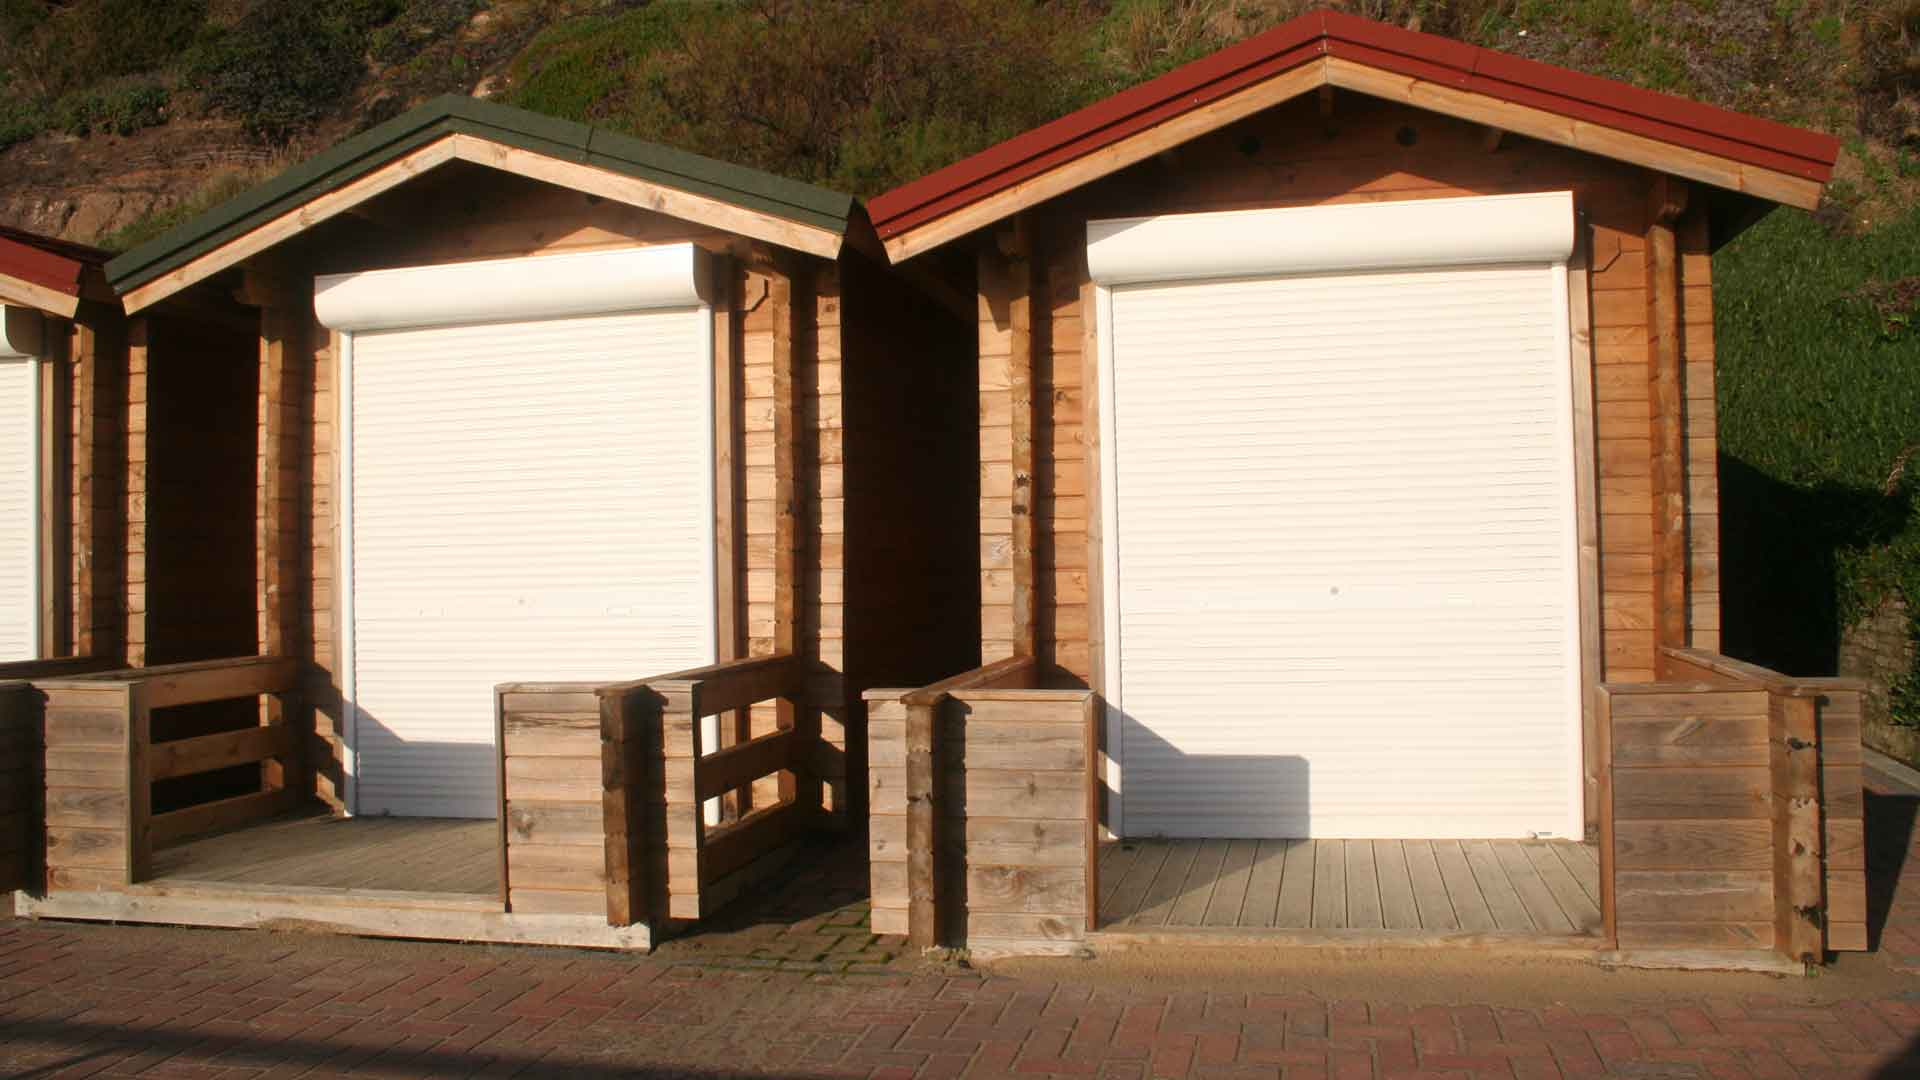 <b>fishermans-walk-gallery2.jpg</b> <br/> Different style of Huts at Fisherman's Walk Beach with roll up shutter.